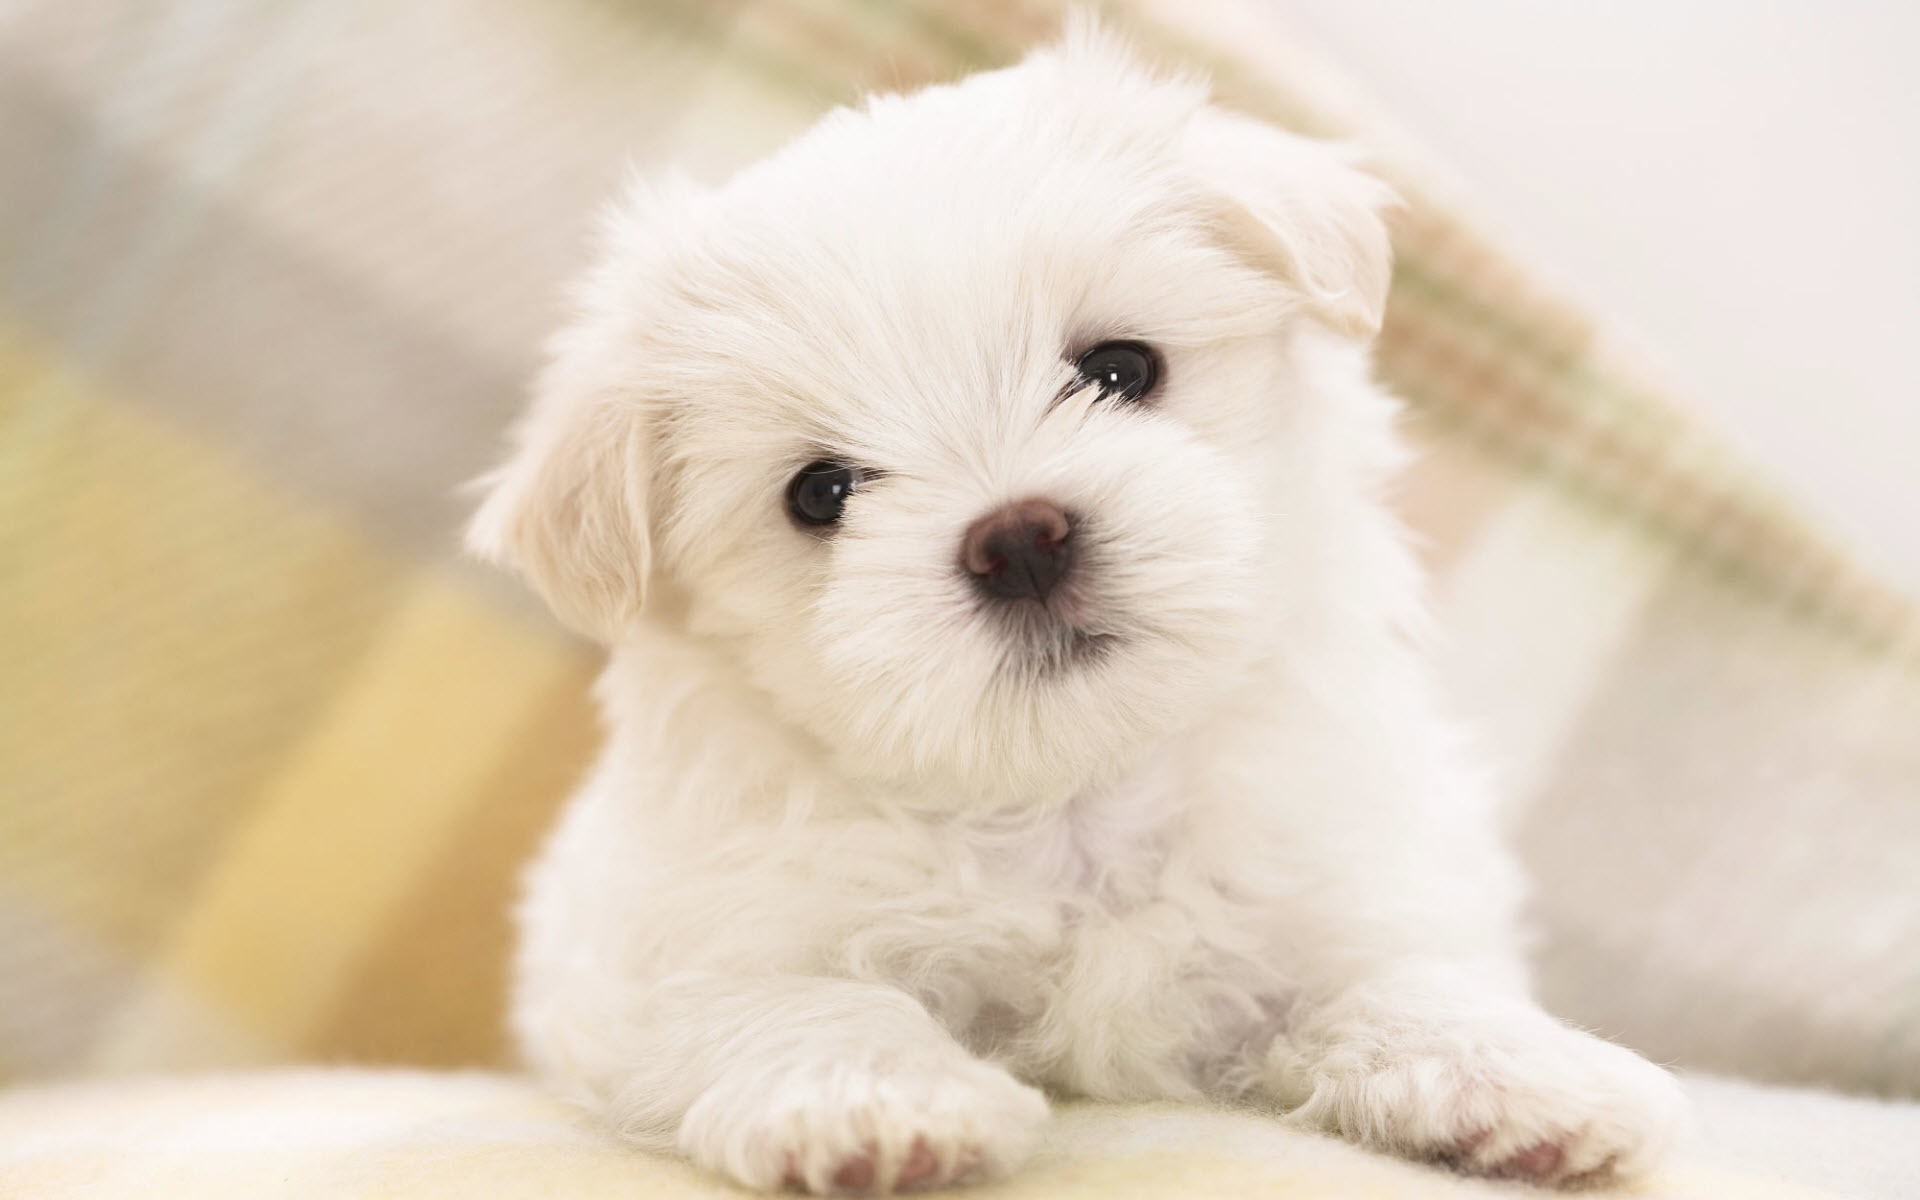 cute litte maltese dog - hd wallpaper